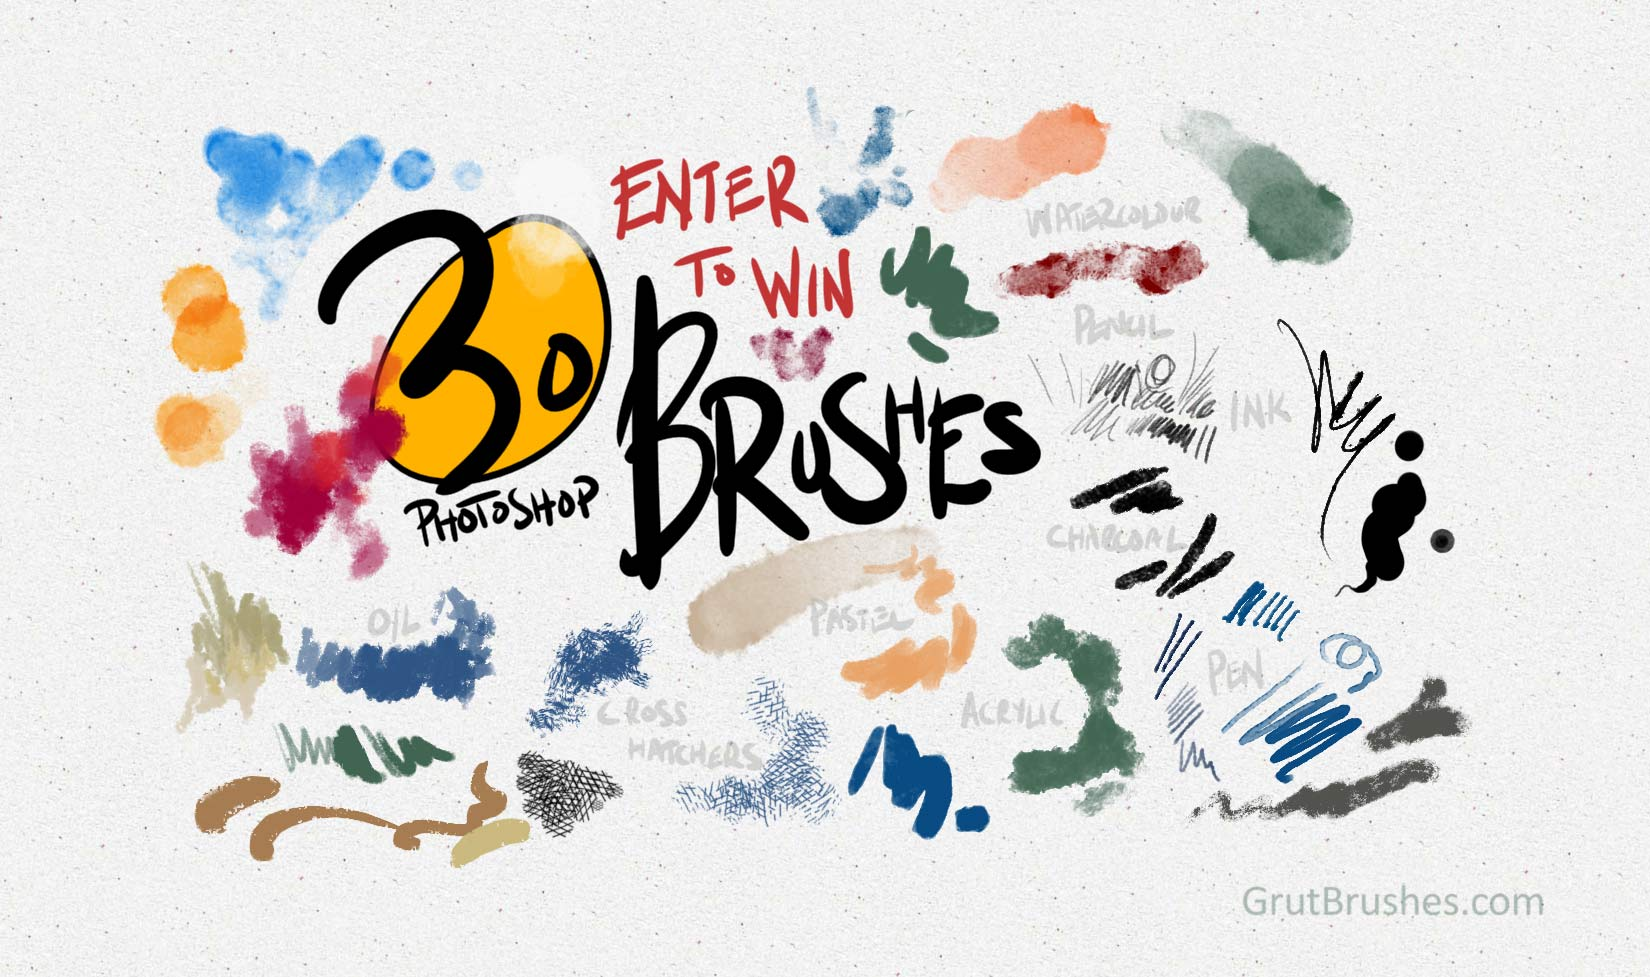 Win 30 realistic natural media Photoshop brushes for digital painters and illustrators